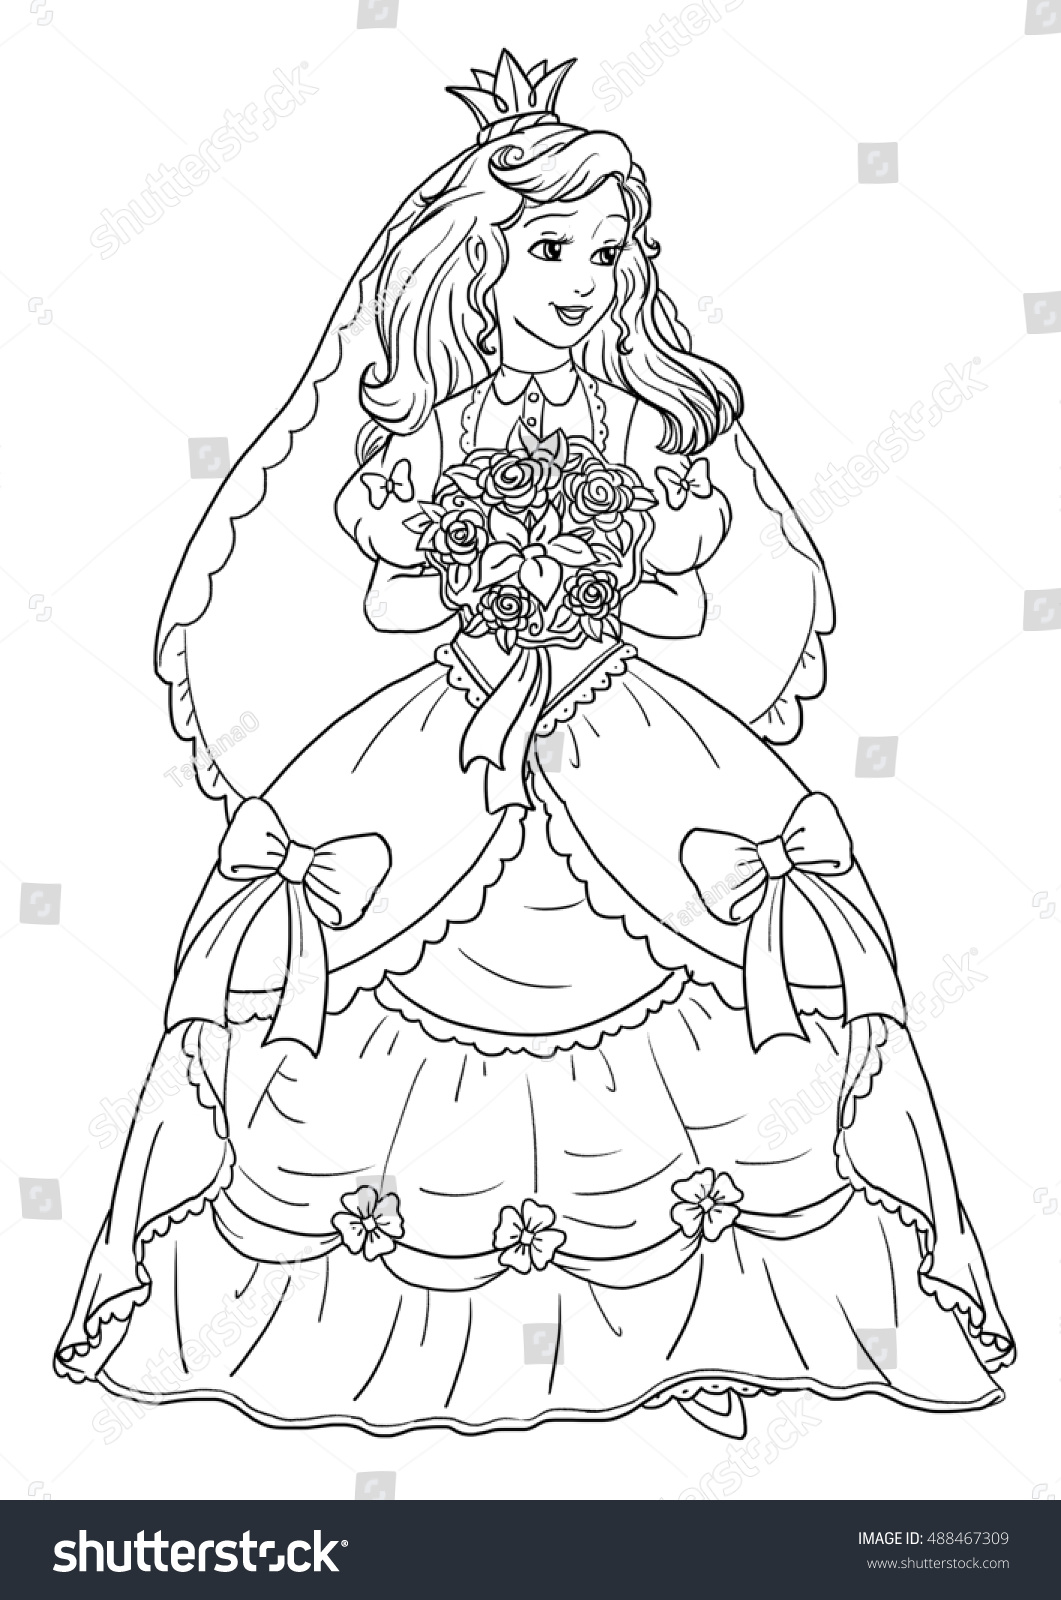 Princess Bride Coloring Pages Best Image Coloring Page